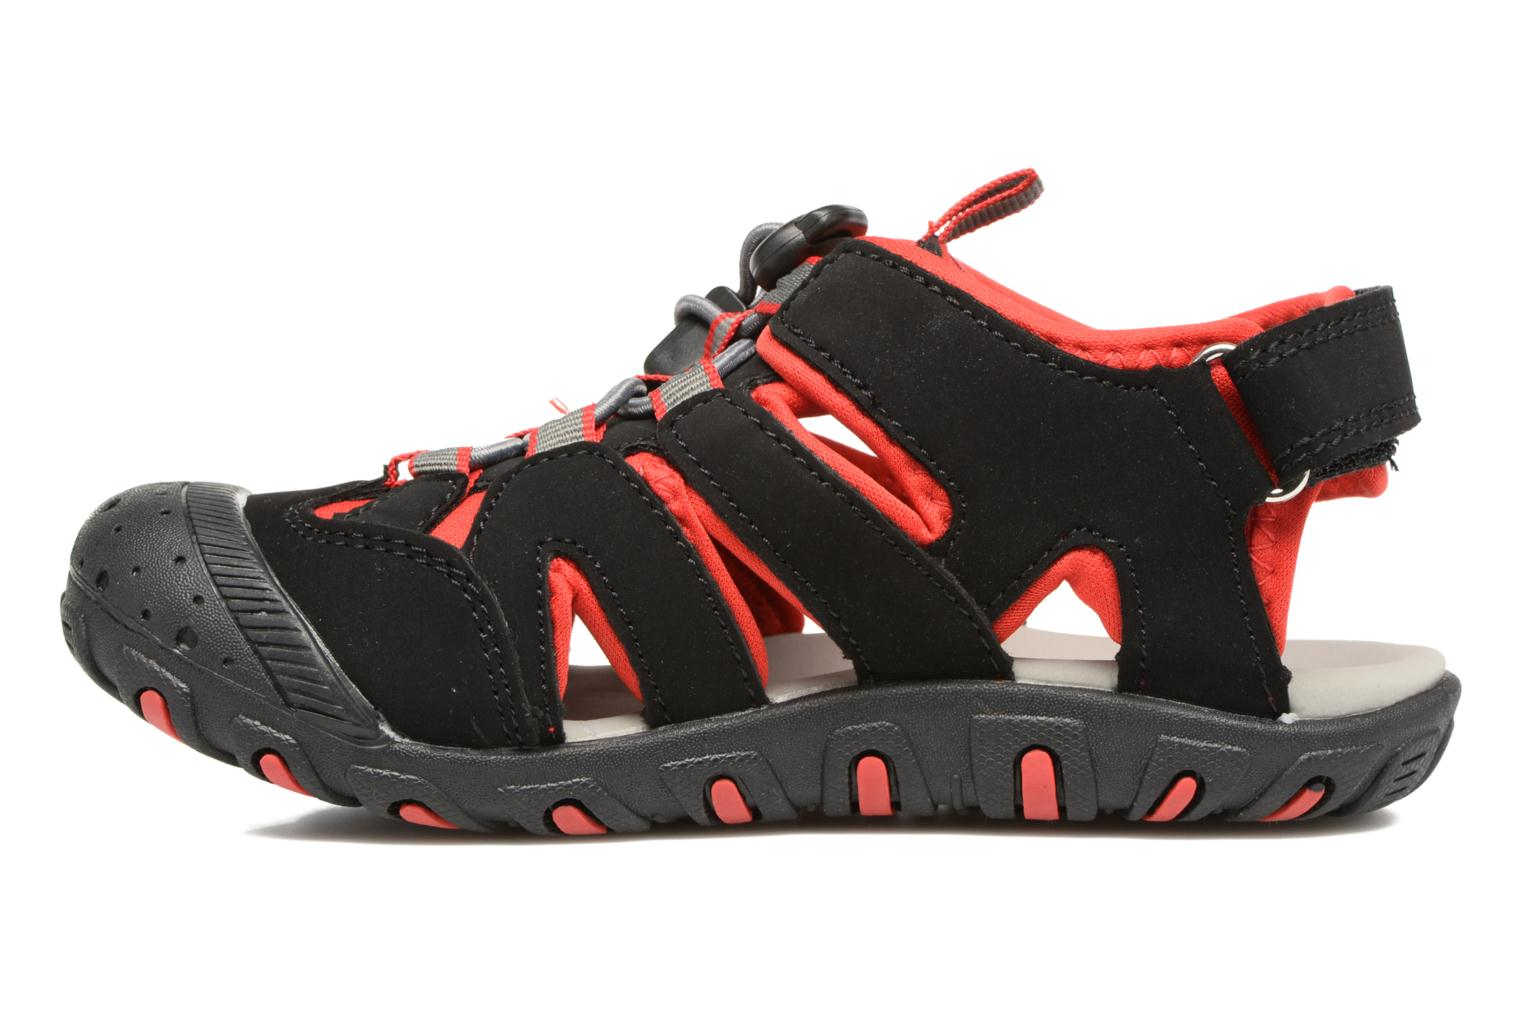 Oyster Black/red